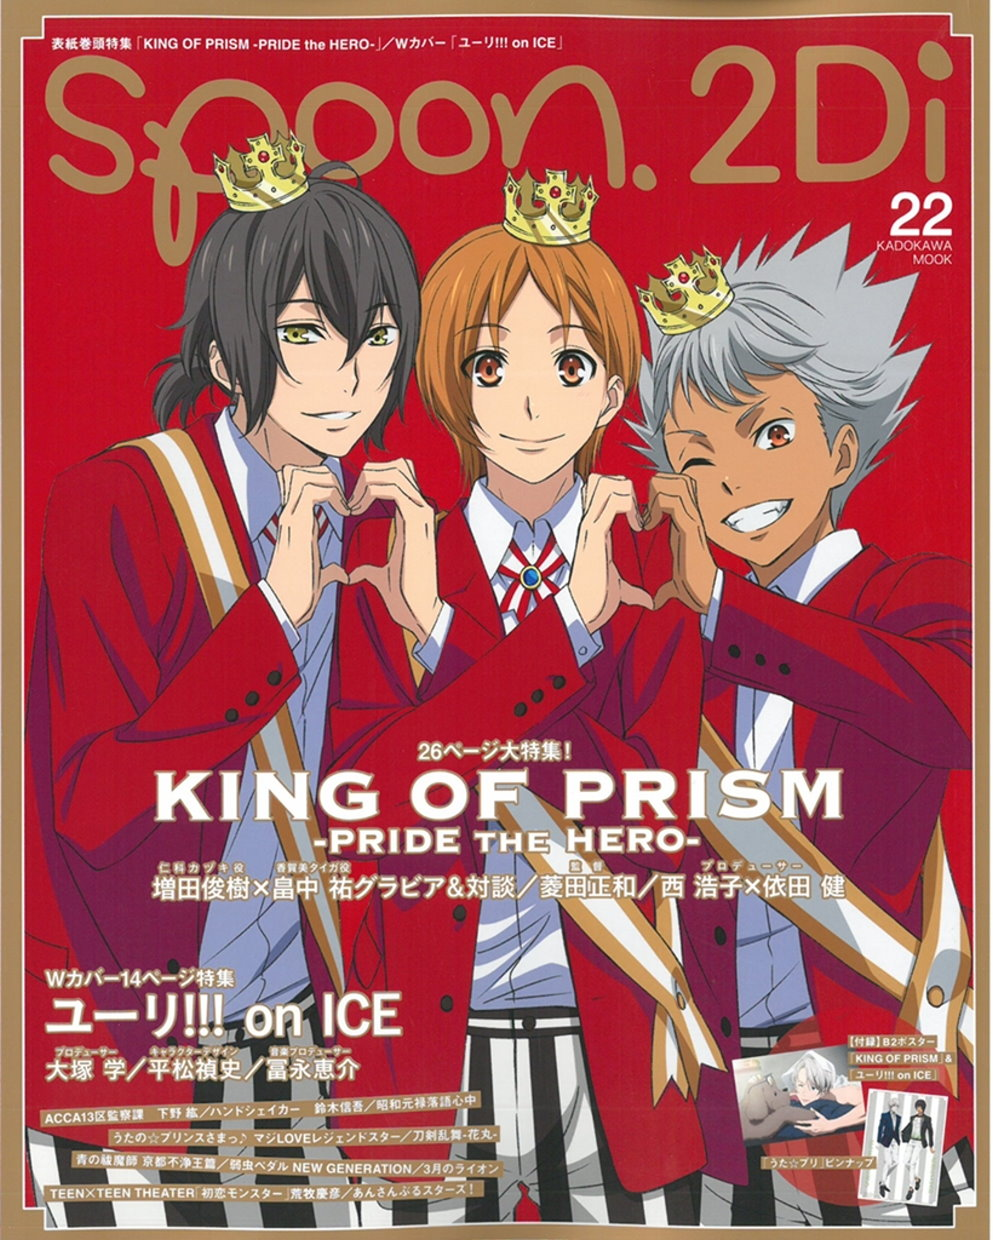 SPOON 2Di VOL.22:勇利!!!on ICE&KING OF PRISM ~P